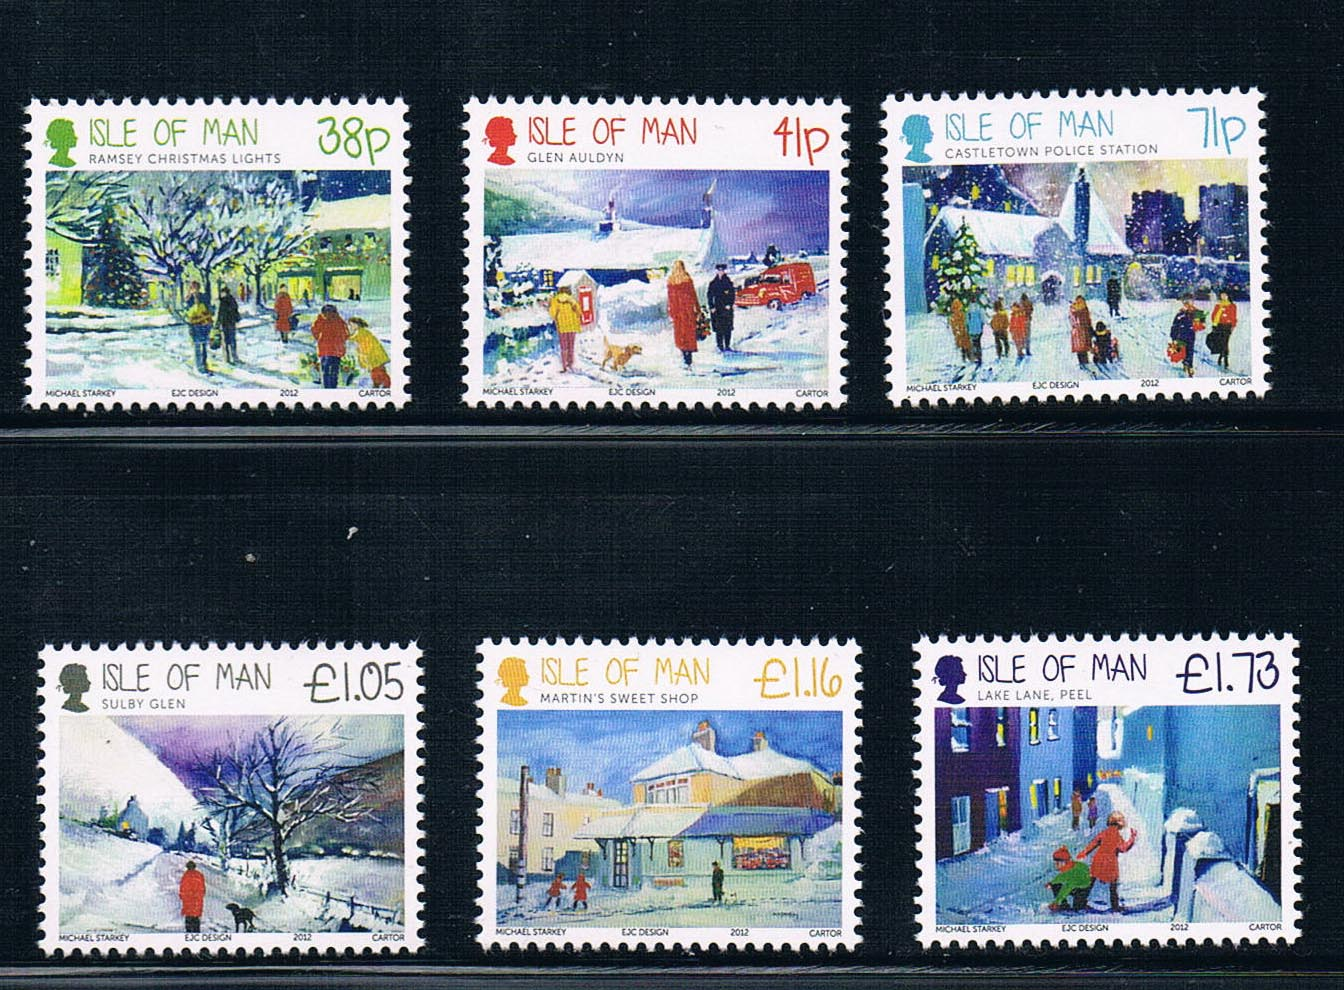 GB0360 of the Isle of man 2012 Christmas stamps 6 new 1206 dogs from 2012 ea1420 1ms new 0626 coastal bird stamps